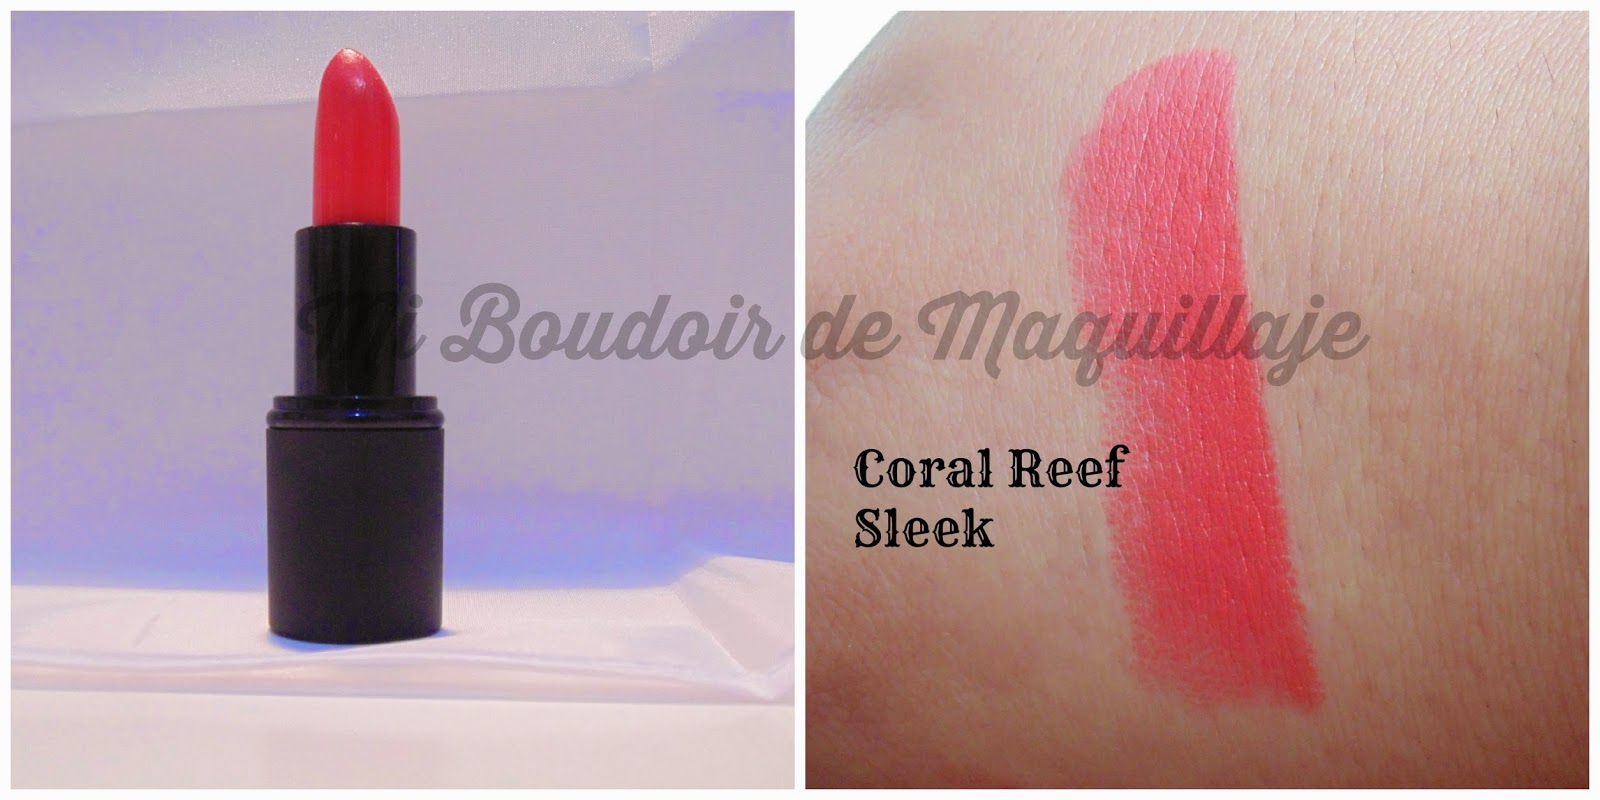 CORAL REEF SLEEK